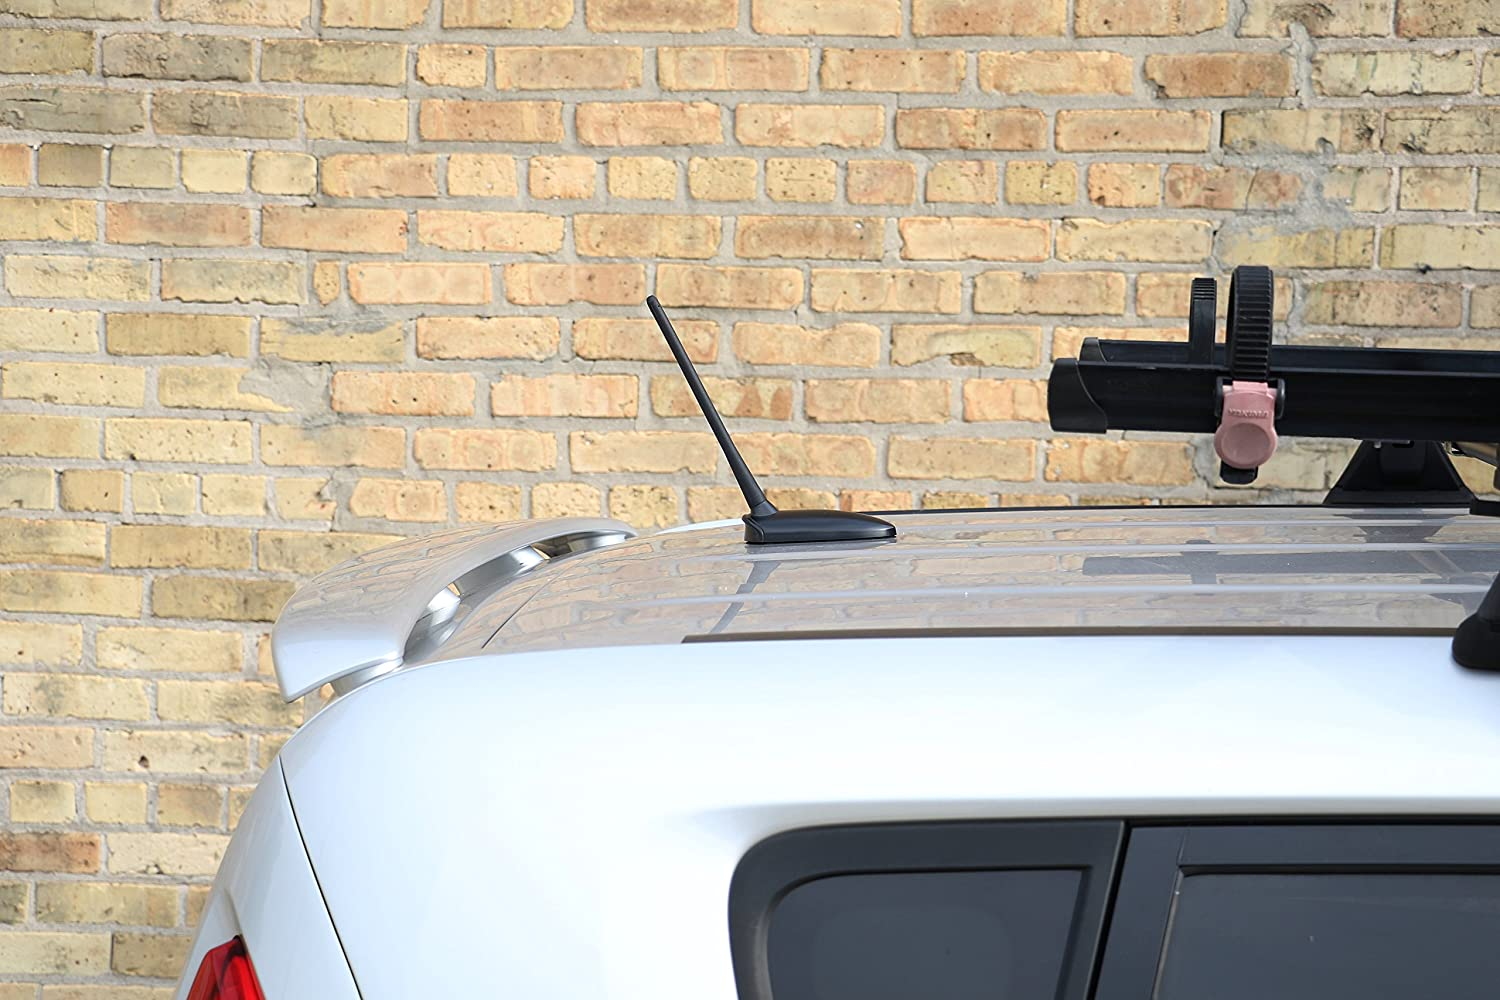 2004-2008 AntennaMastsRus 8 Inch Screw-On Antenna is Compatible with Toyota Solara